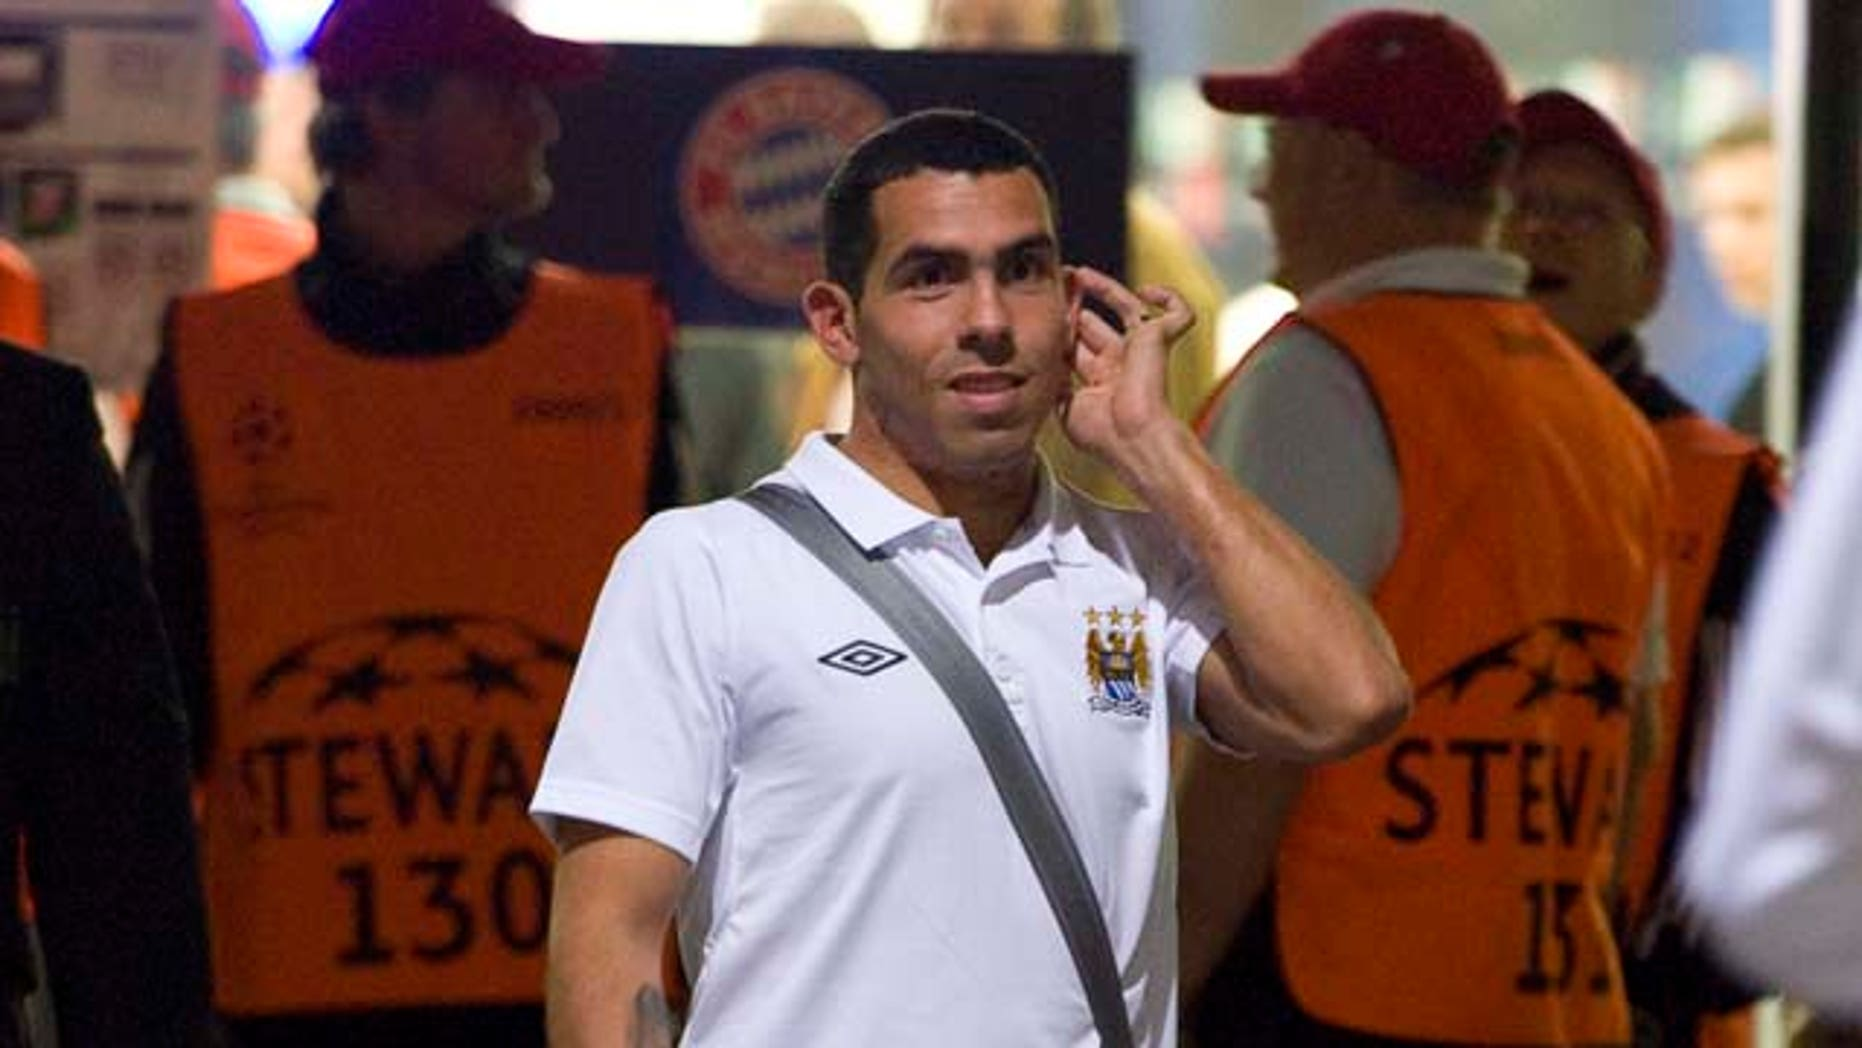 Manchester City's Carlos Tevez leaves the stadium after the Group A Champions League soccer match between FC  Bayern Munich and Manchester City FC in Munich, southern Germany, on Tuesday , Sept. 27, 2011. Munich won 2-0. (AP Photo / Kerstin Joensson)